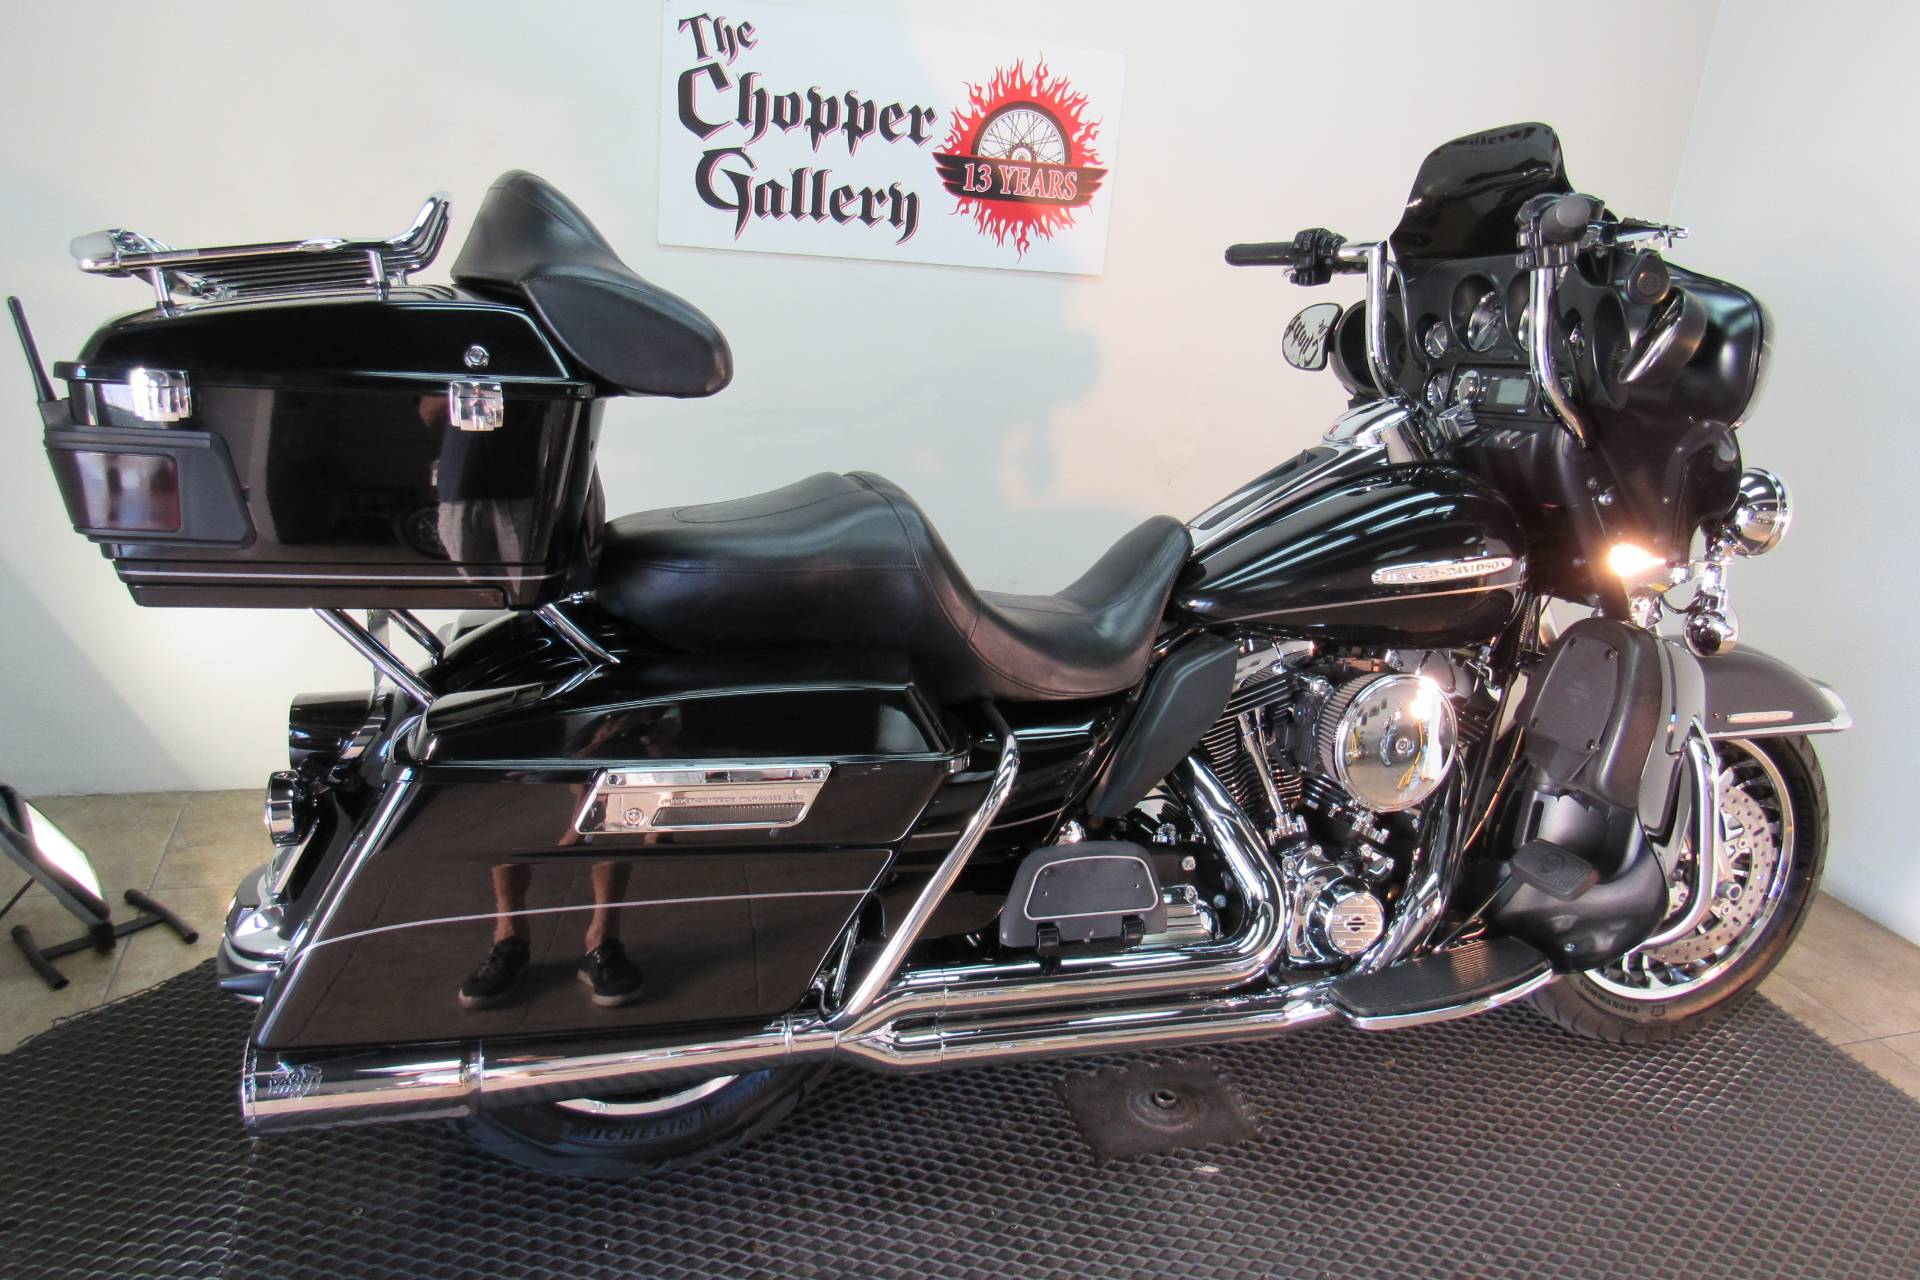 2013 Harley-Davidson Electra Glide® Ultra Limited in Temecula, California - Photo 3